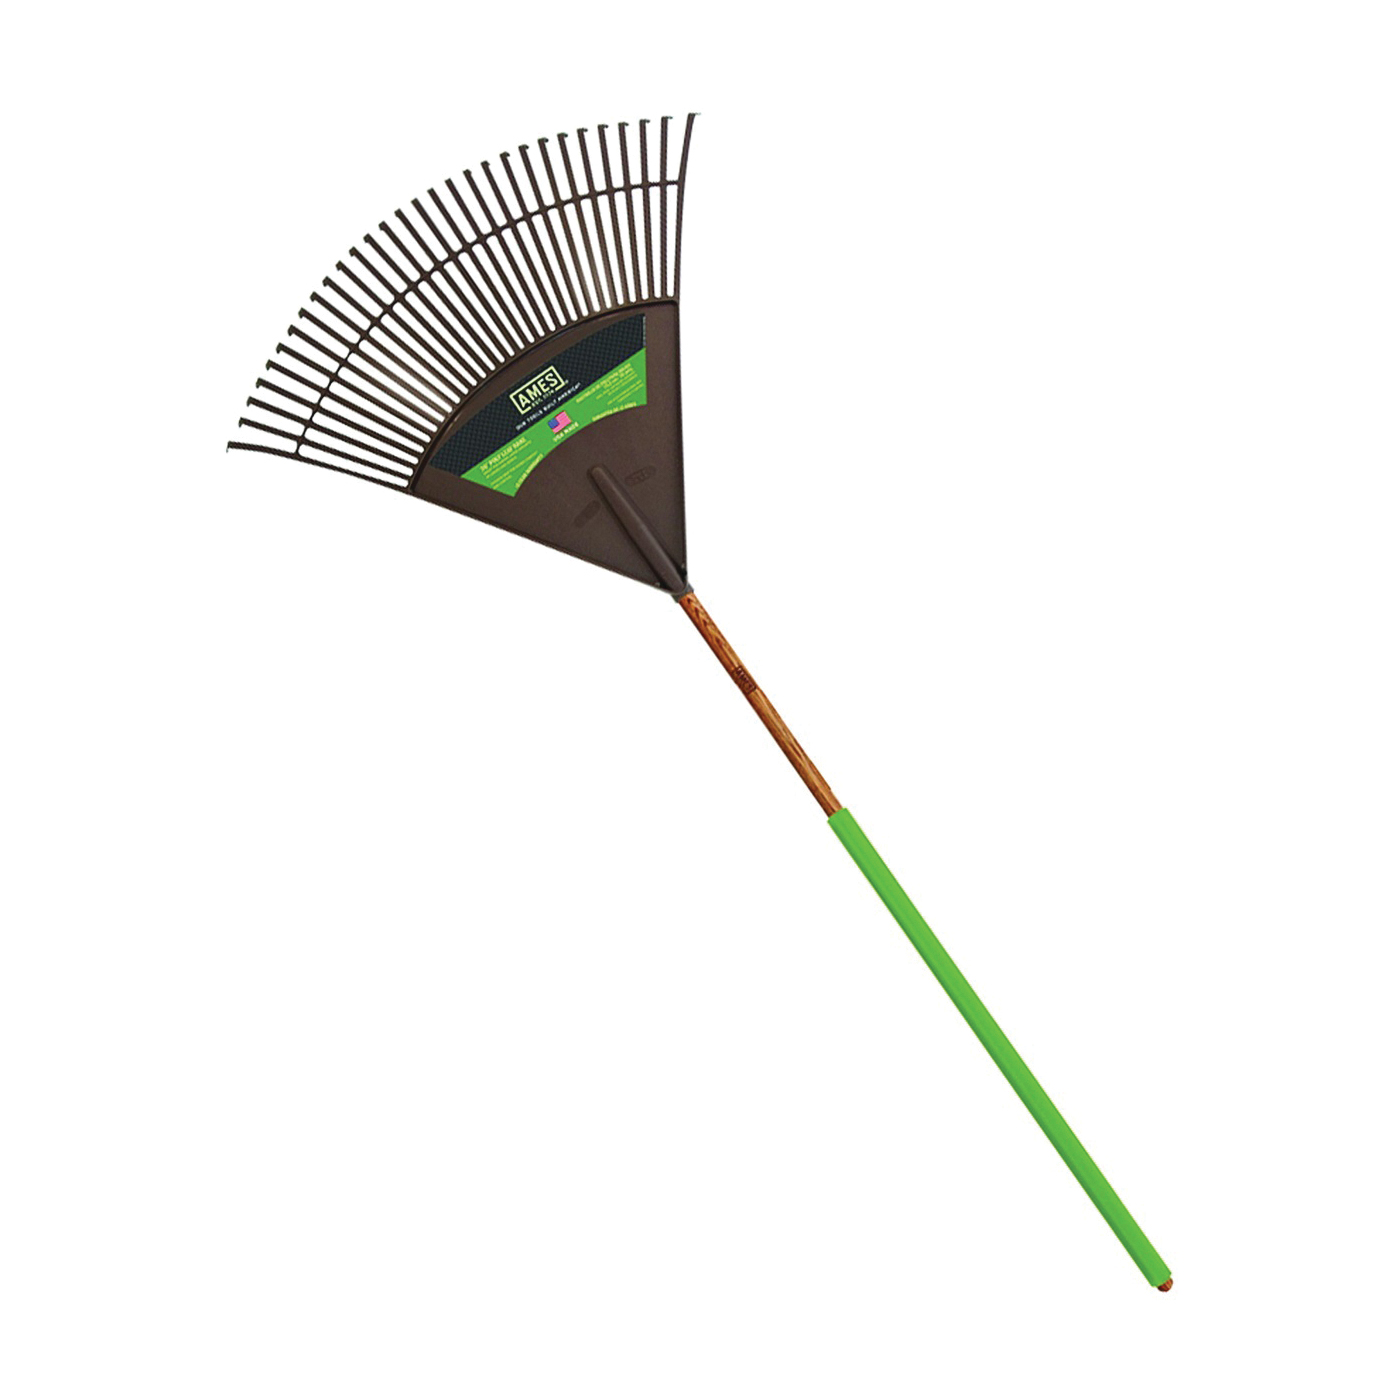 Picture of AMES 2915712 Leaf Rake, Poly Tine, 30 -Tine, Wood Handle, 48 in L Handle